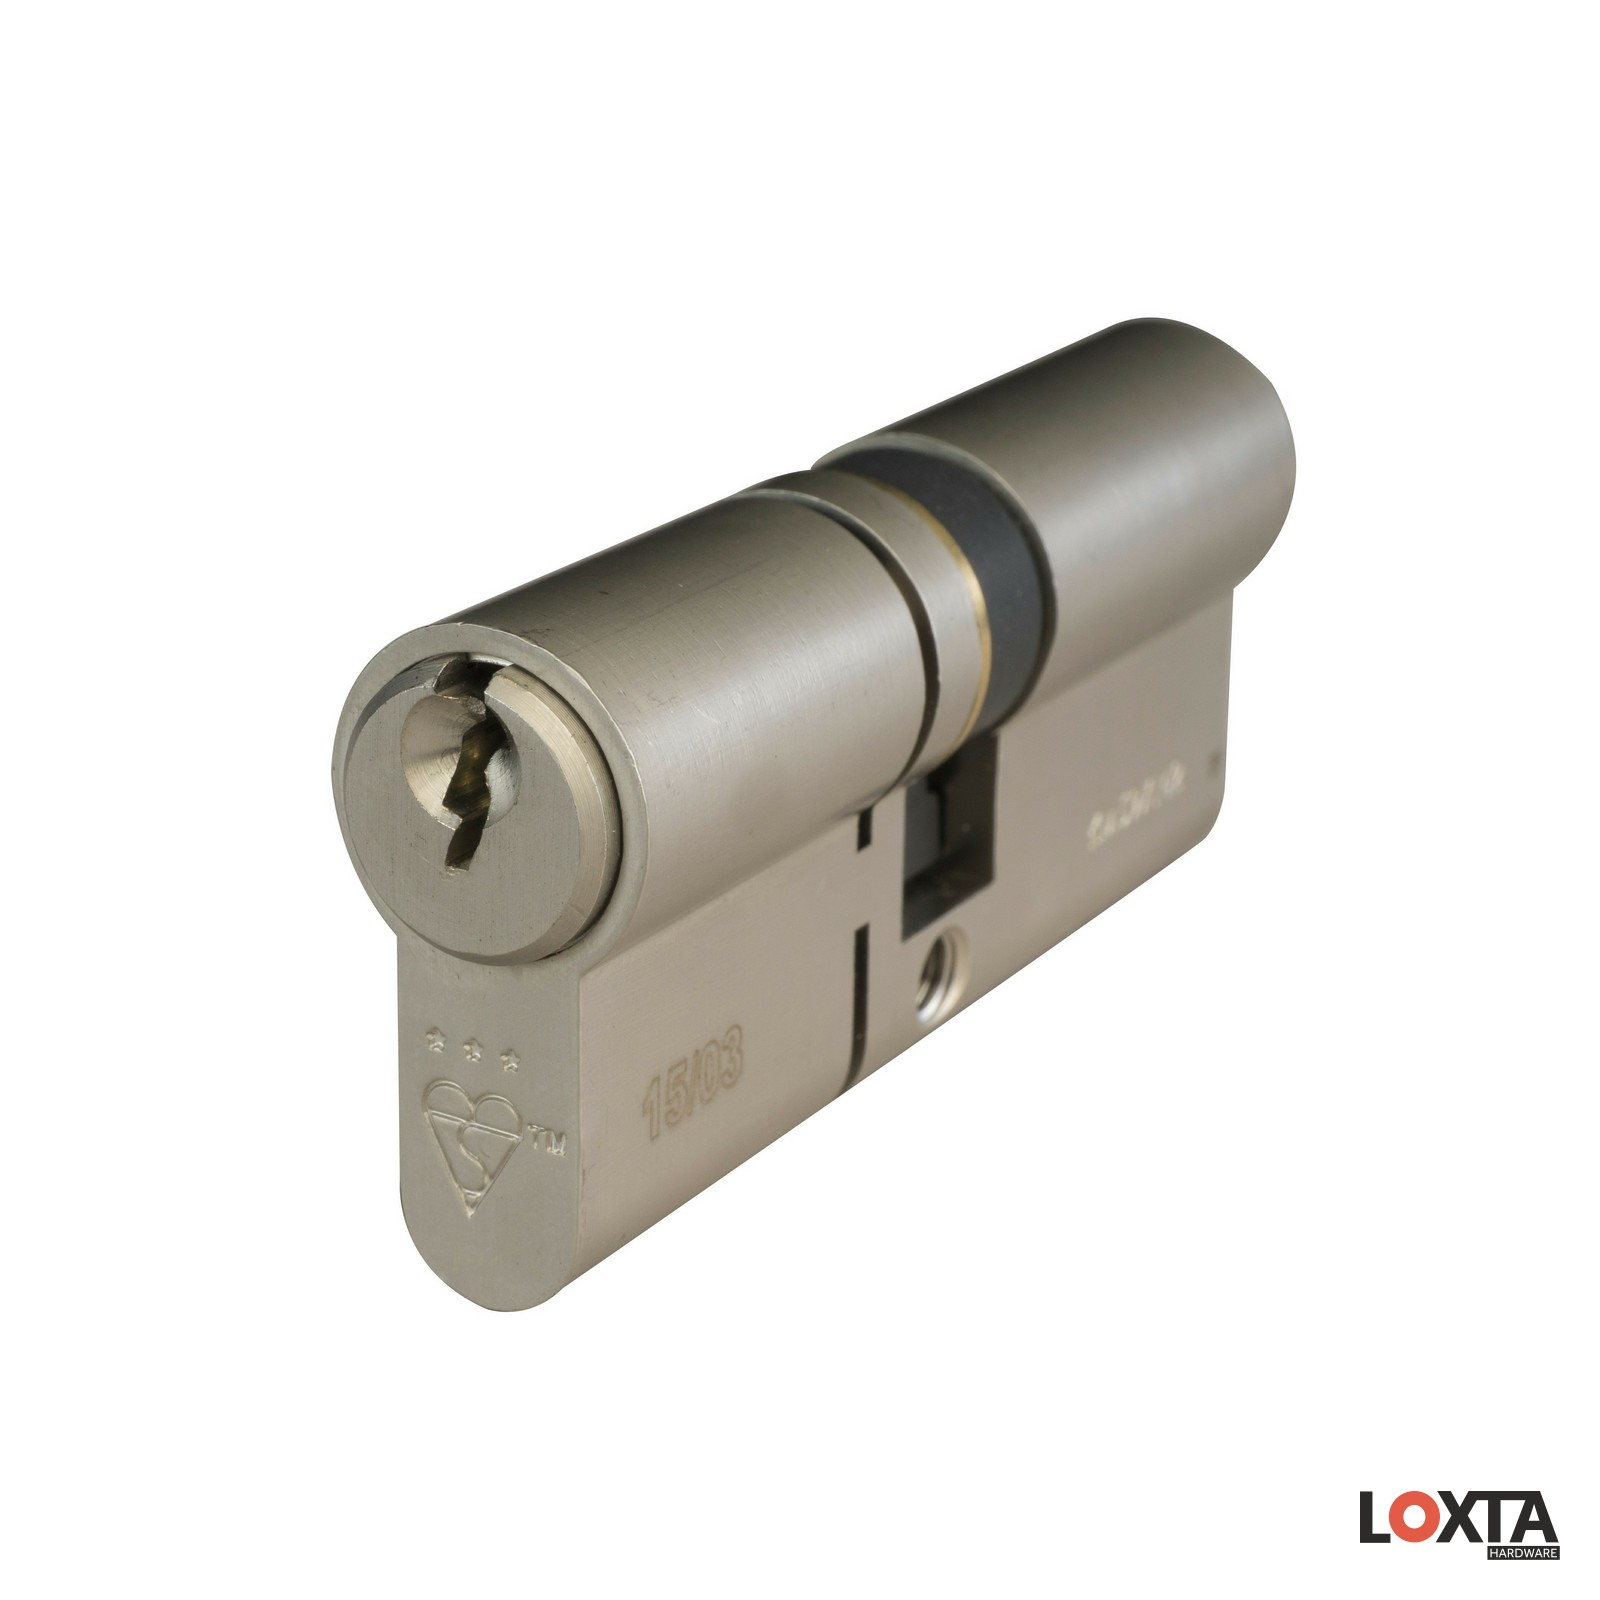 KT10099 3 Star High Security Euro Cylinder, Double, TS007*** + Kitemarked